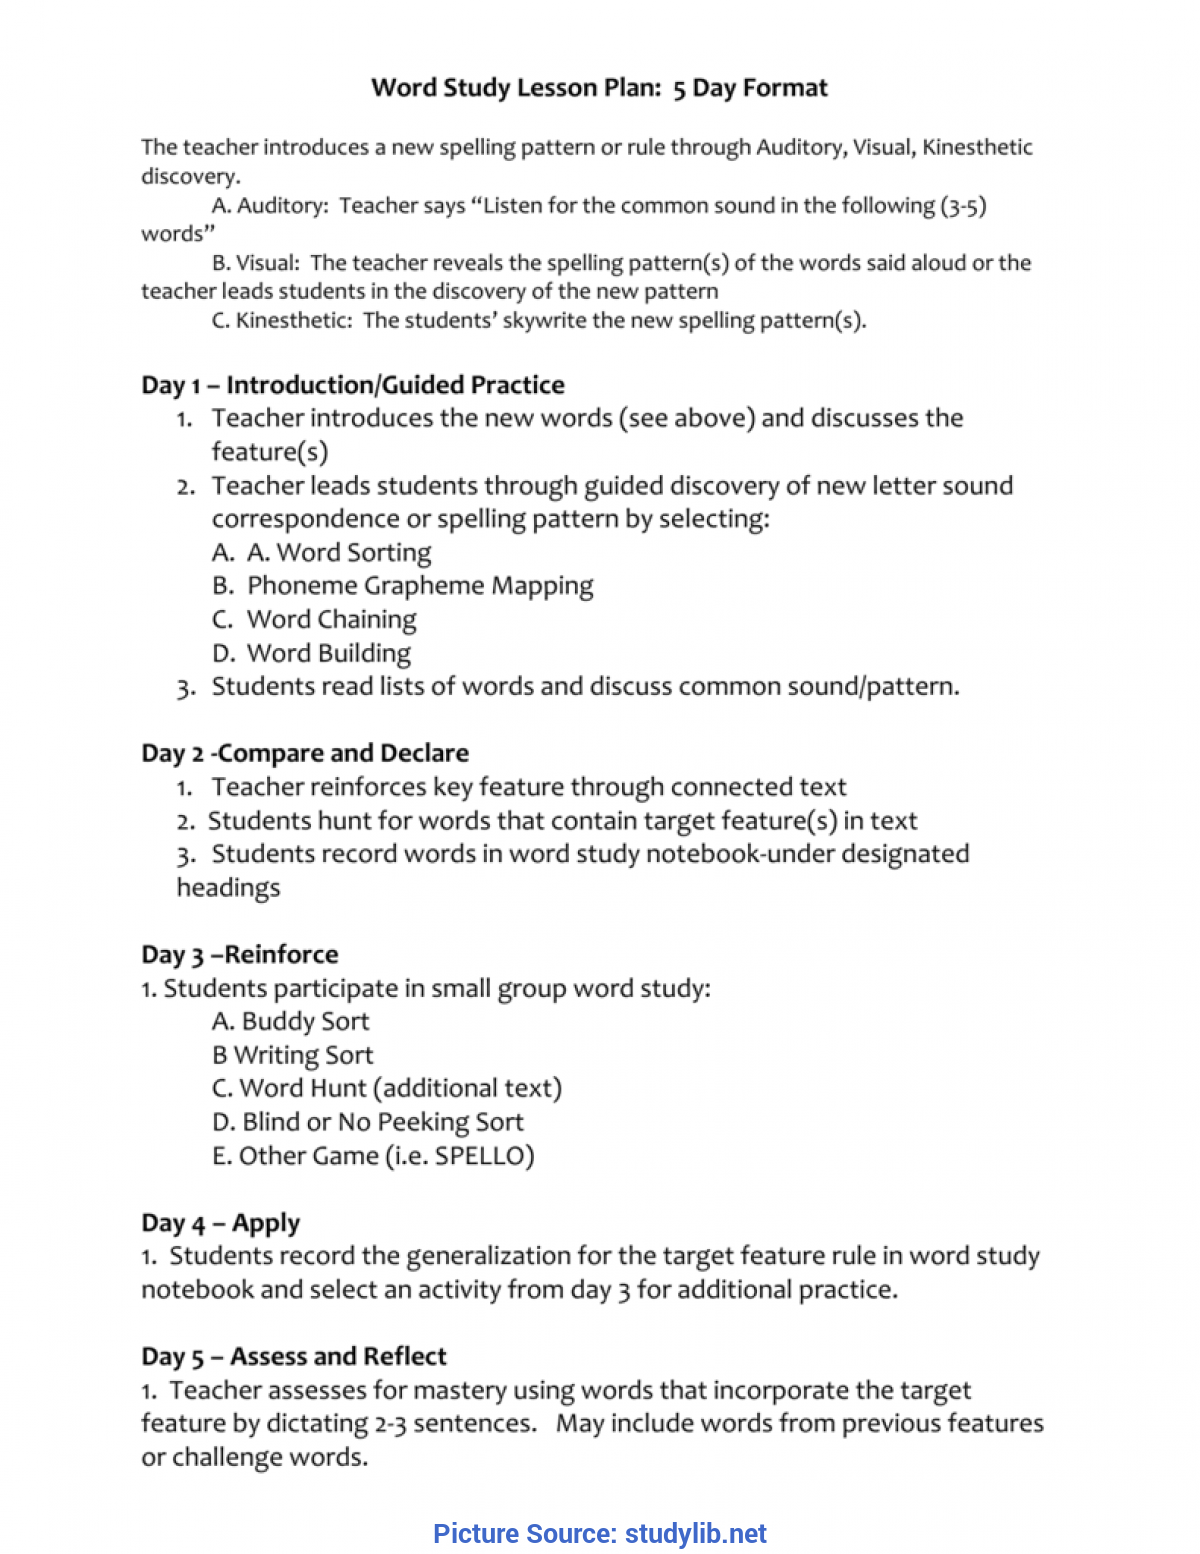 Excellent Generalization In Lesson Plan Sample -Word Study Lesson Plan / Weekly Routine (5 D